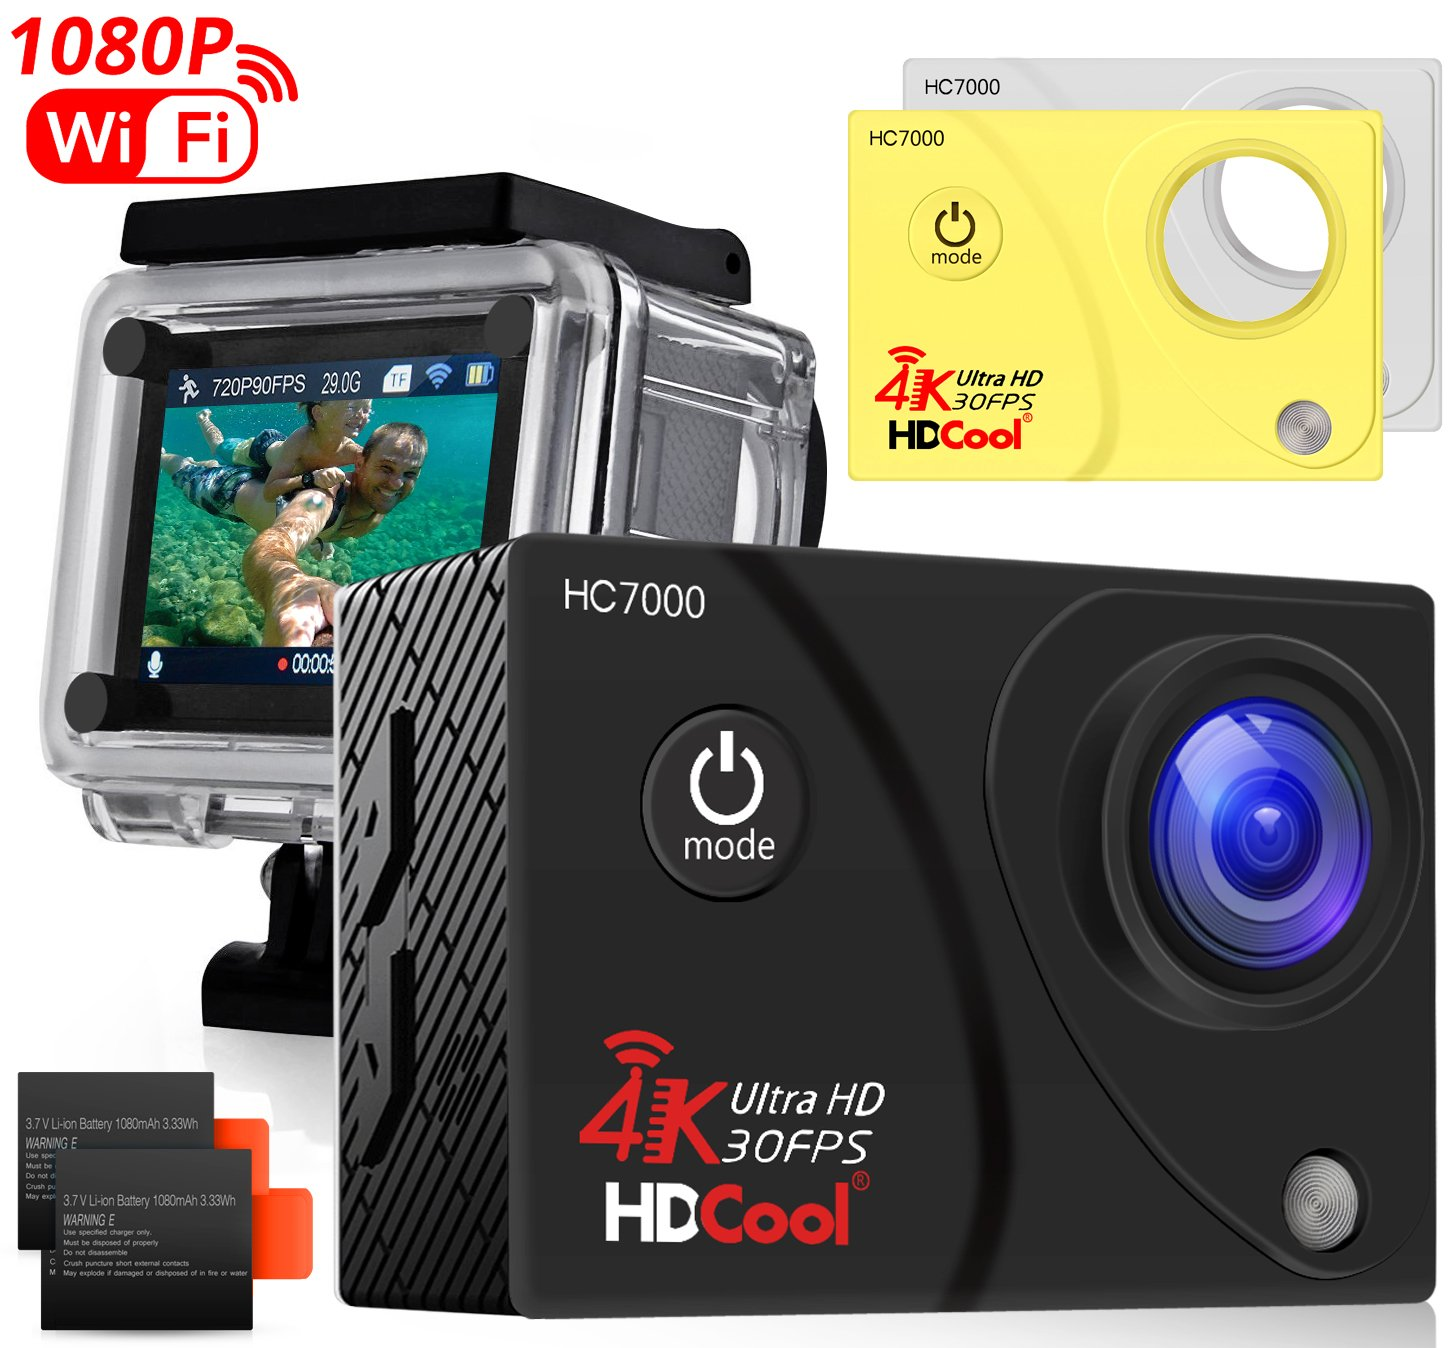 HDCool Action Camera 4K 170 Degree Waterproof Sports Camera 1080P HD 16MP Ultra Wide-Angle Lens DV Camcoder, 2.0 Inch LCD Display,Include 2 Rechargeable 900 mAh Batteries and 2 Covers by HDCOOL